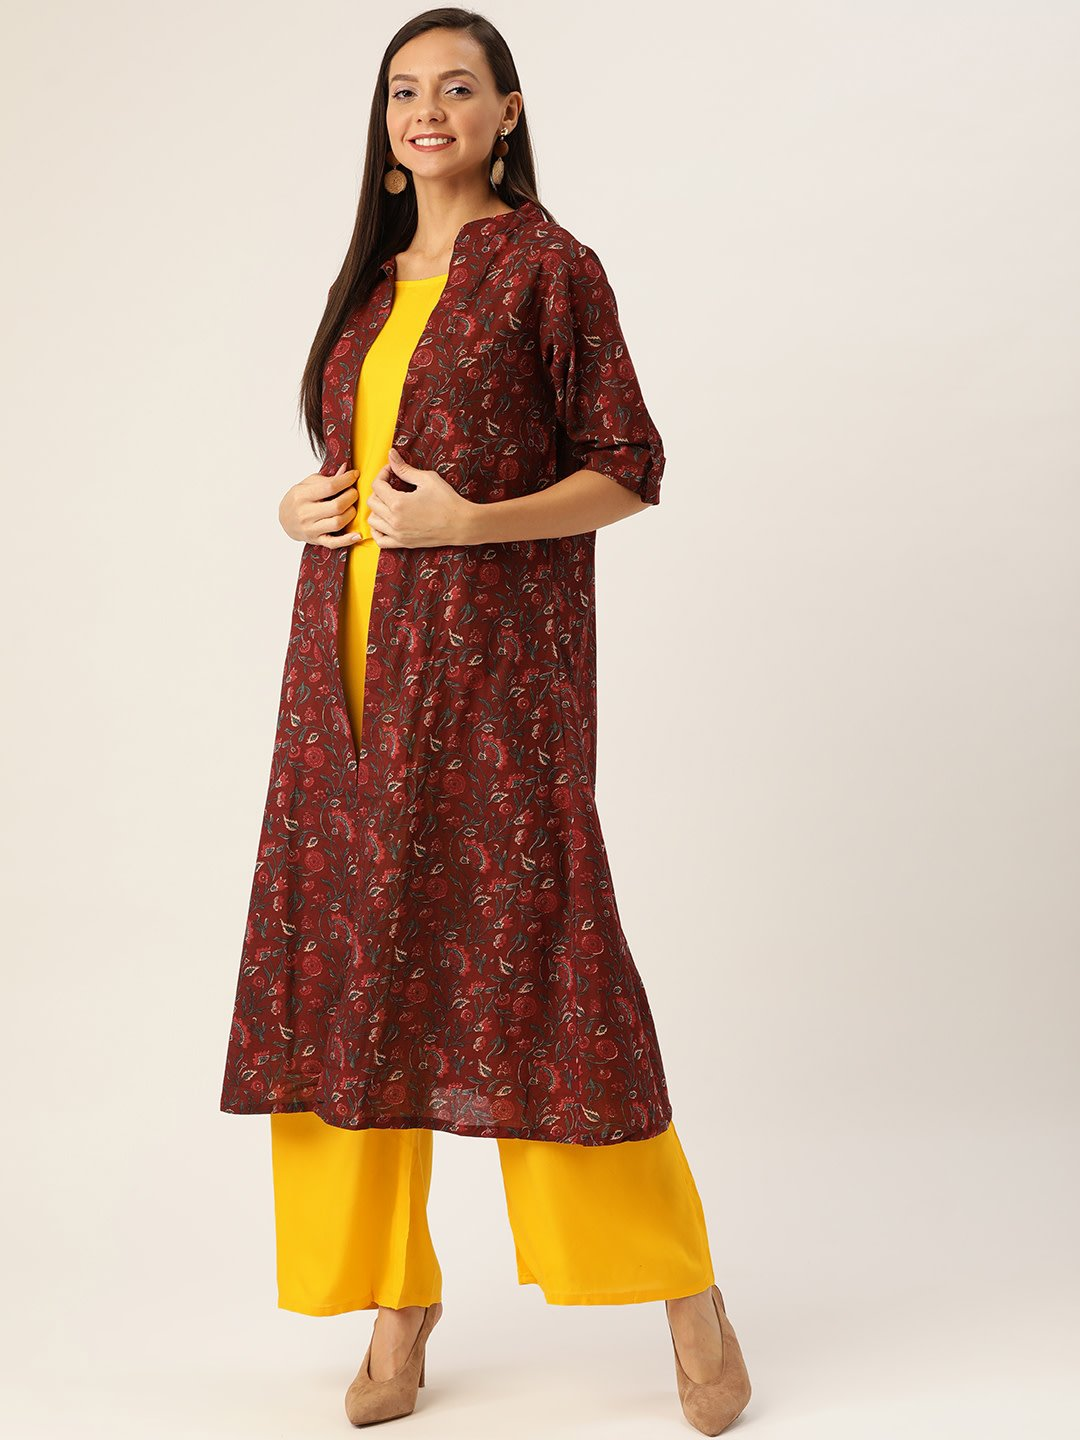 YELLOW SET WITH MAROON SHRUG